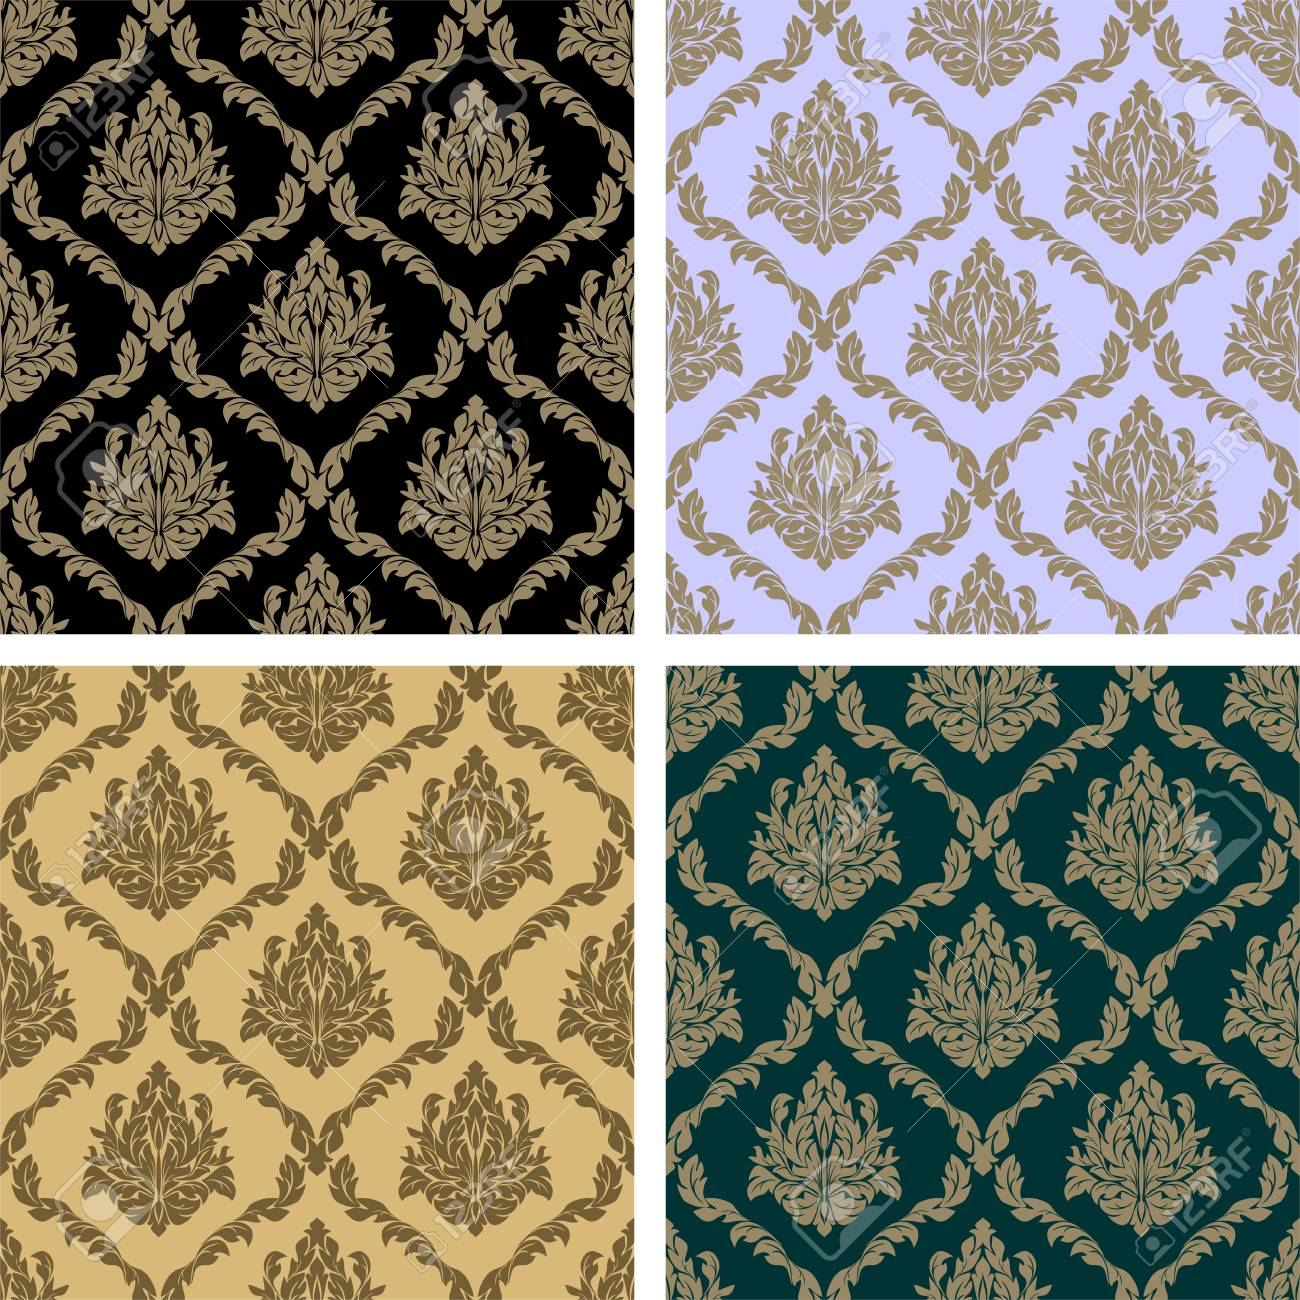 Damask floral repeat Pattern - set in four Variants - 97509765